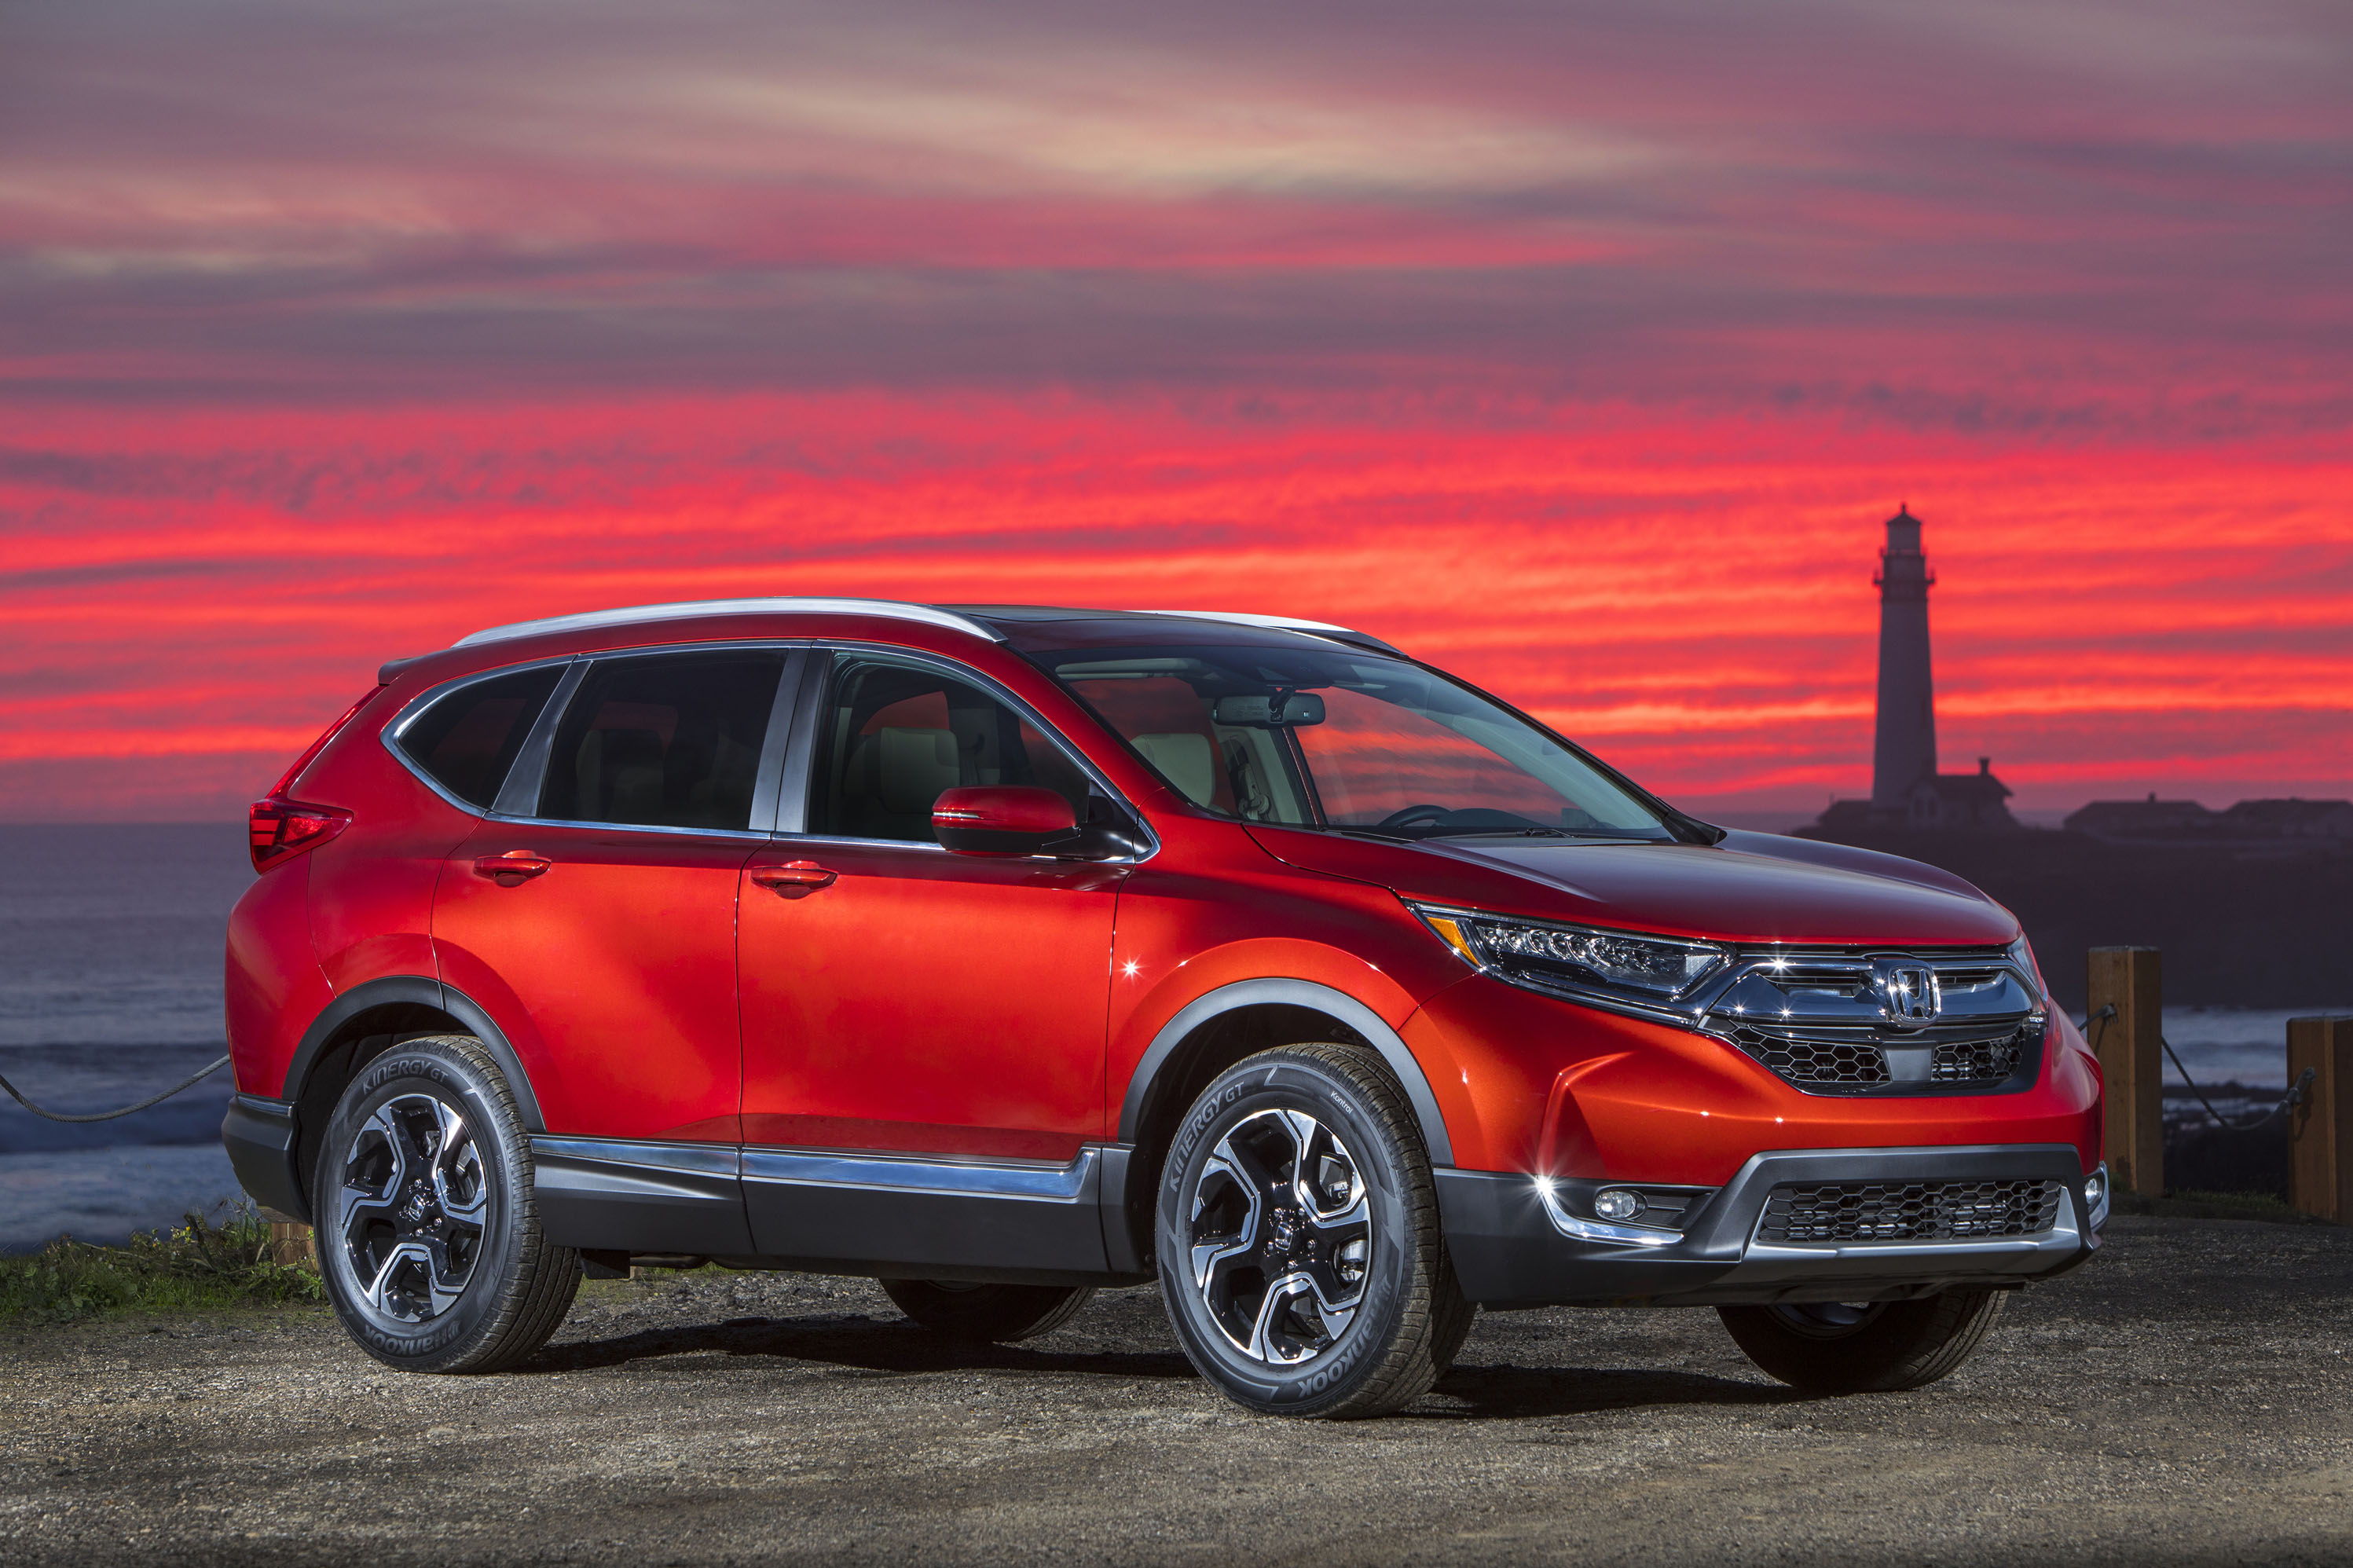 Honda Hrv Avis 5 Things I Learned From The 2018 Honda Cr V America S Favorite